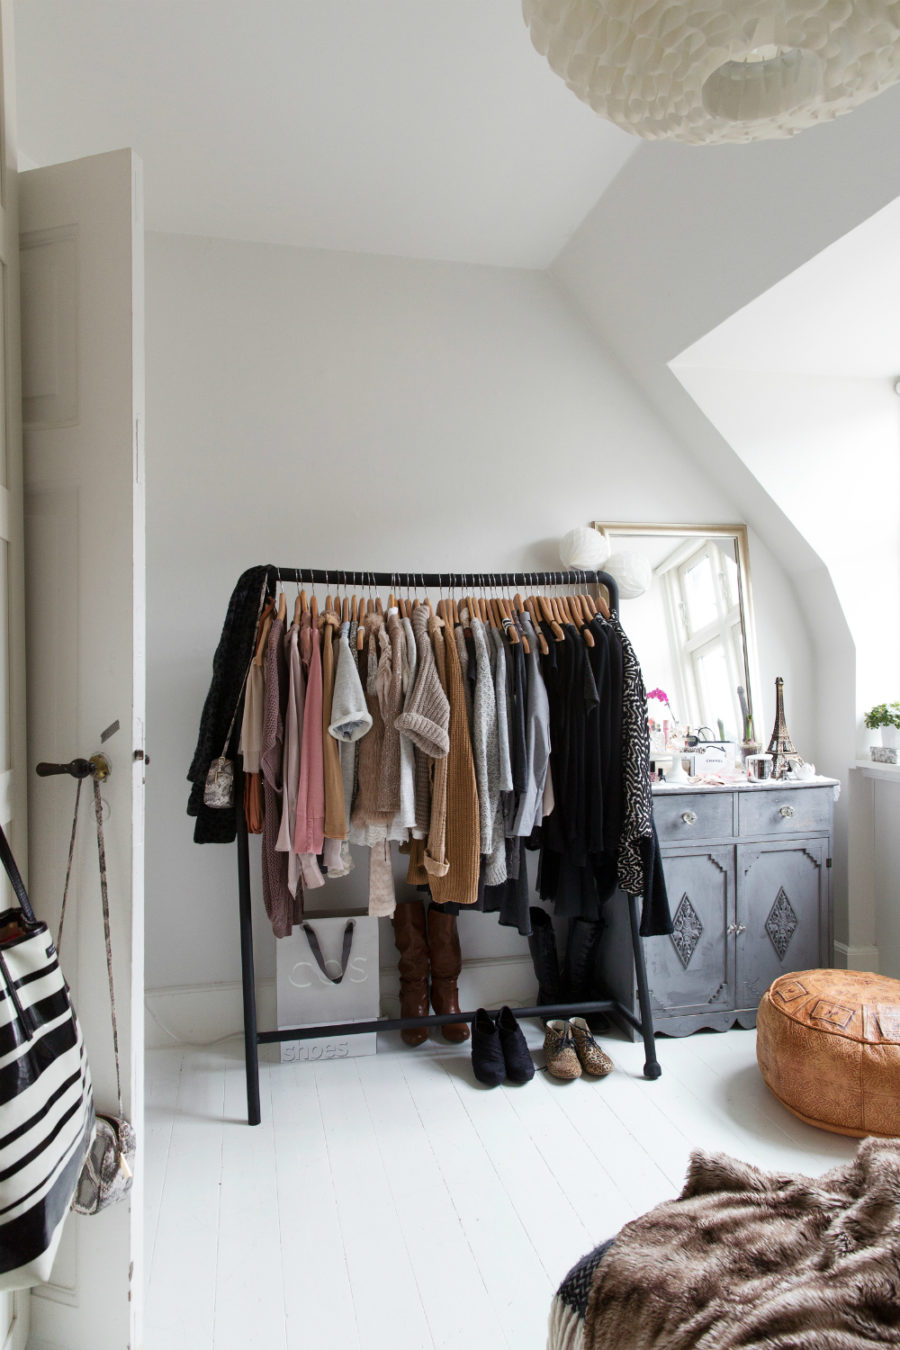 30 Chic and Modern Open Closet Ideas For Displaying Your Wardrobe  shoproomideas